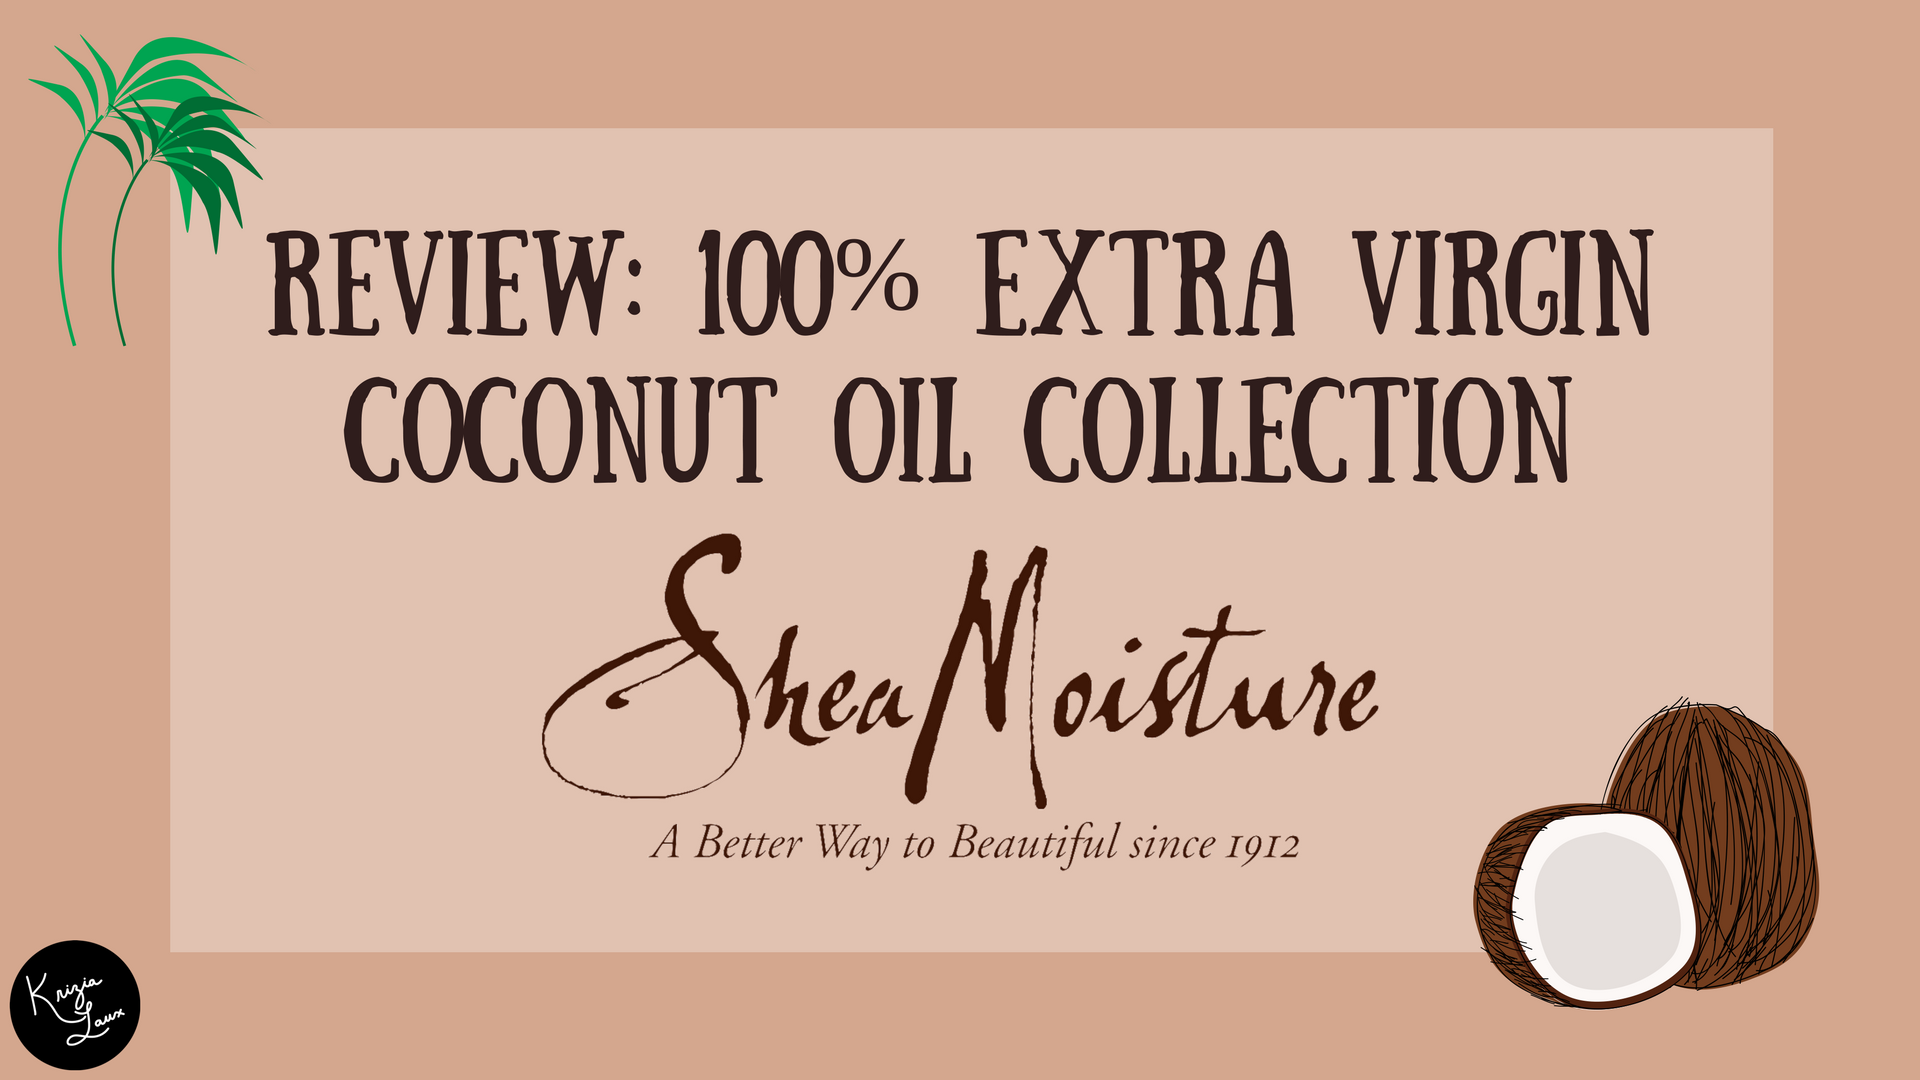 Review: Shea Moisture 100% Extra Virgin Coconut Oil Collection